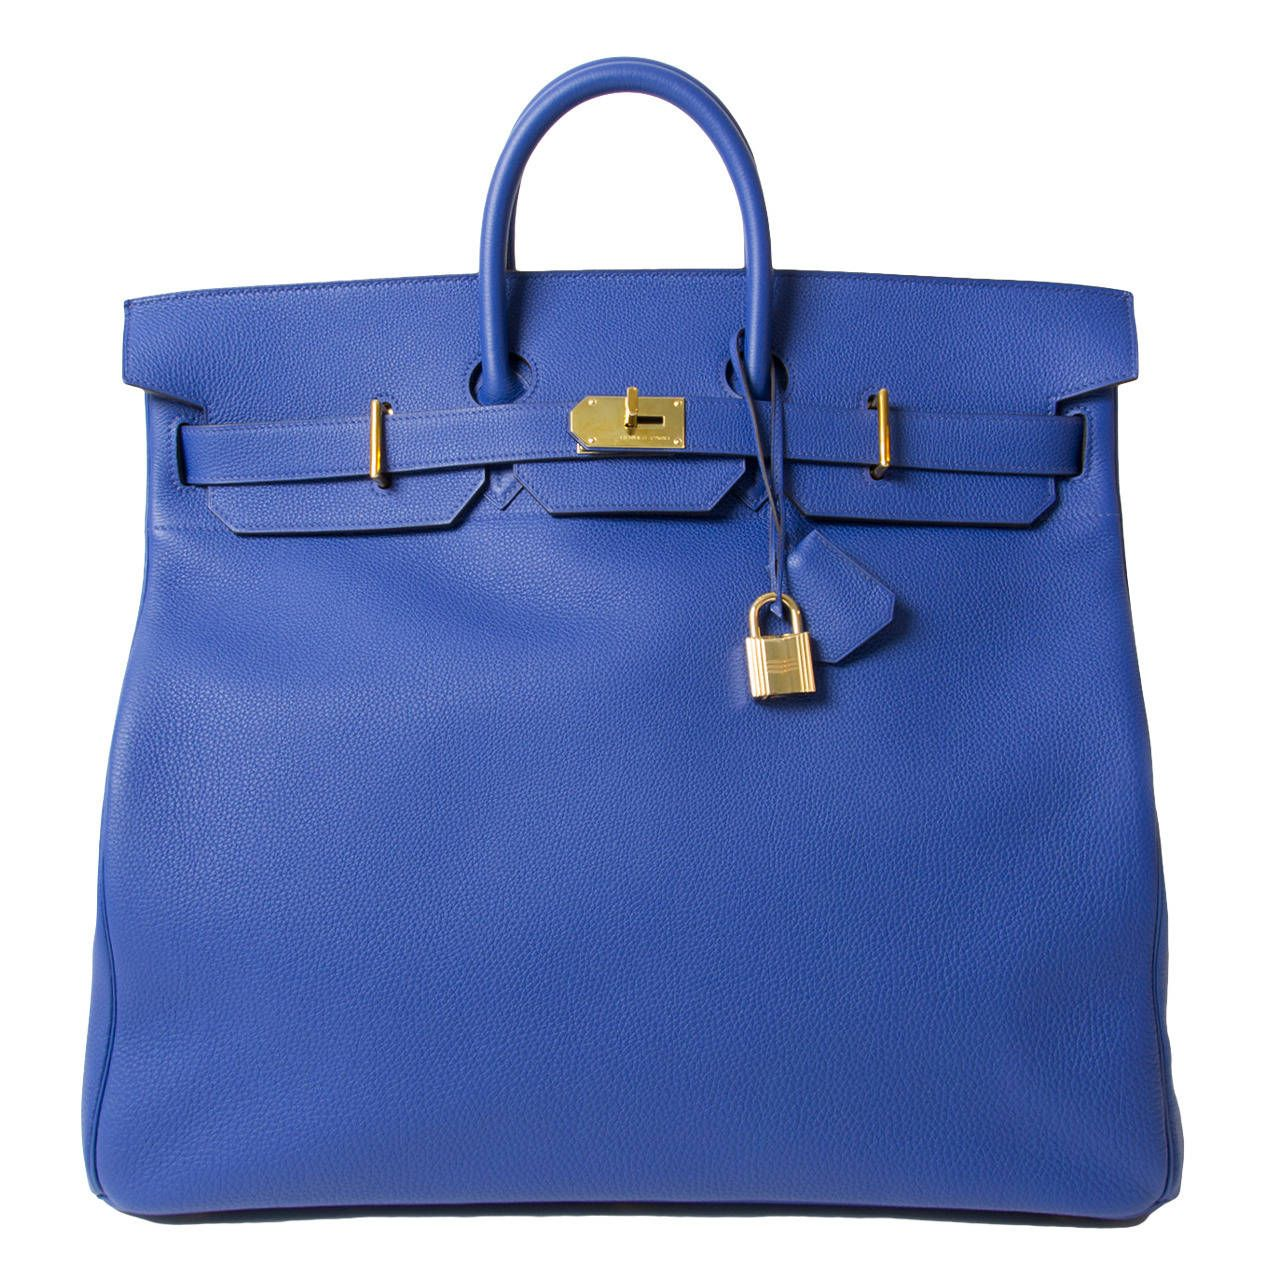 RARE New Hermès HAC Haut à Courroies Birkin 50cm Togo Blue Electrique GHW | From a collection of rare vintage top handle bags at https://www.1stdibs.com/fashion/handbags-purses-bags/top-handle-bags/